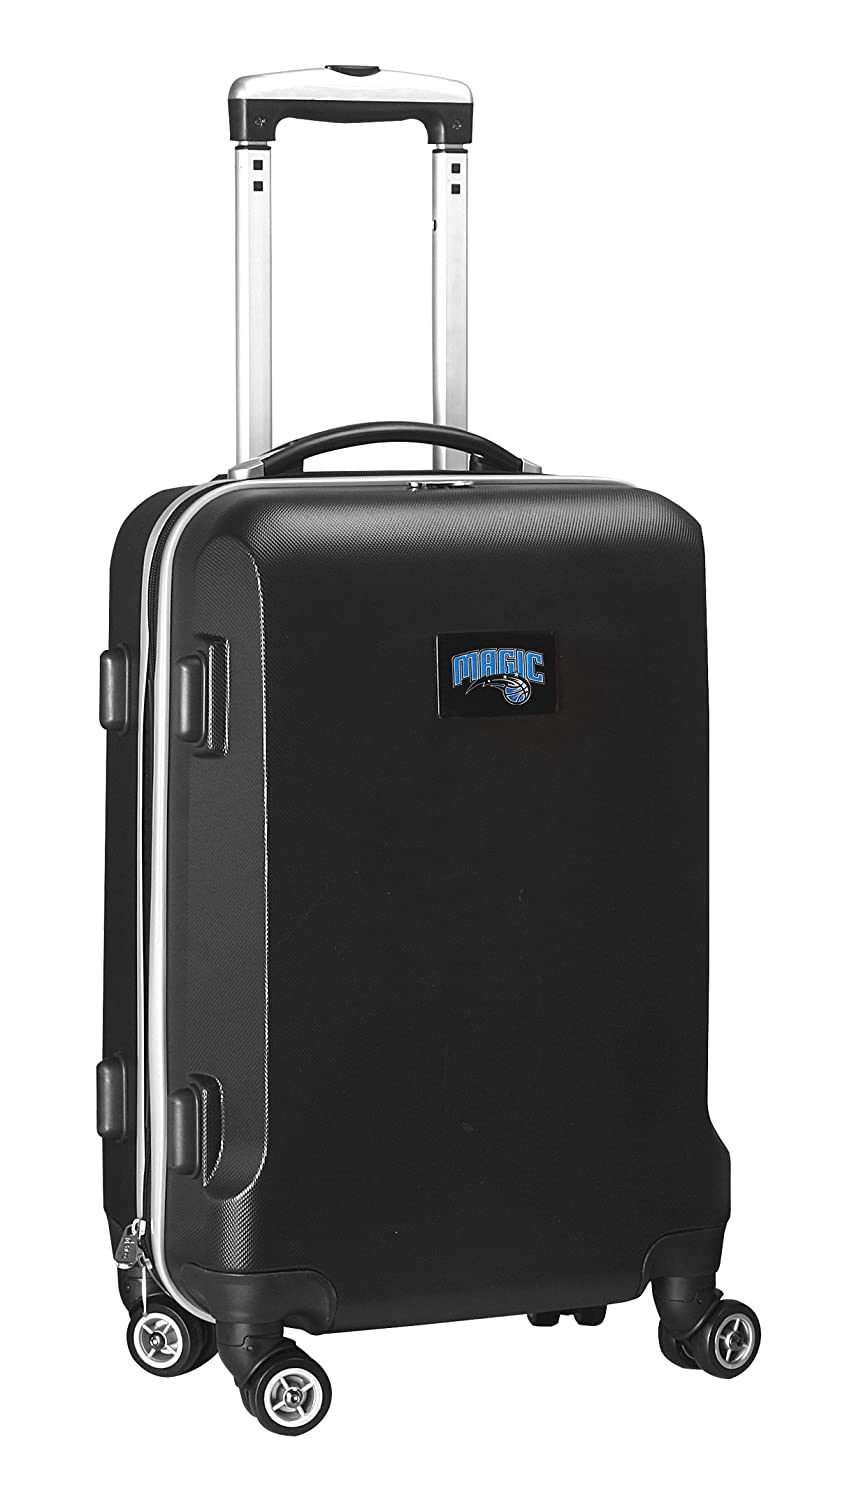 Denco Sports Luggage NBA Orlando Magic 20 Hardside Domestic Carry-On Spinner